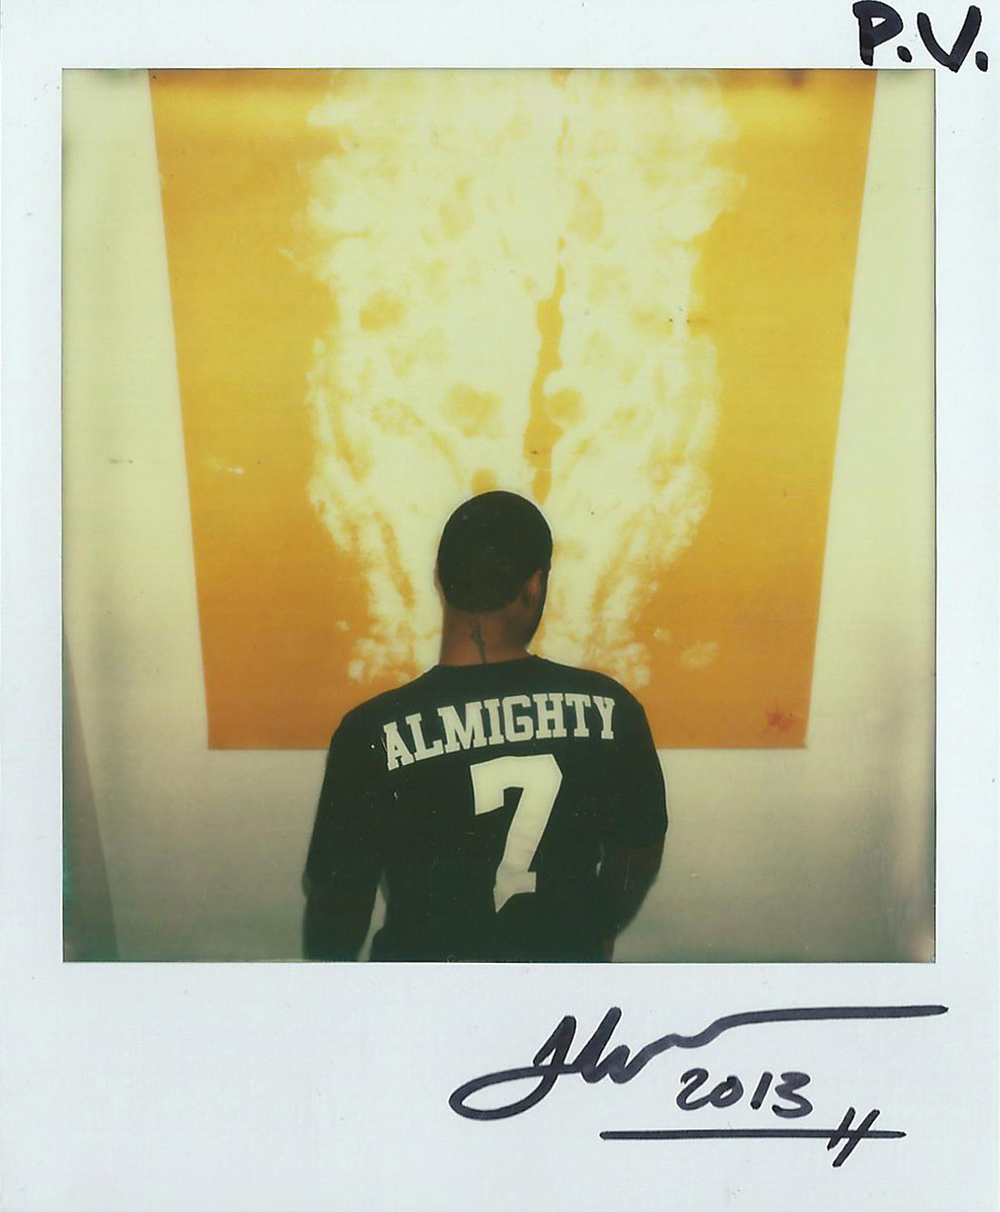 almighty-jay west.jpg